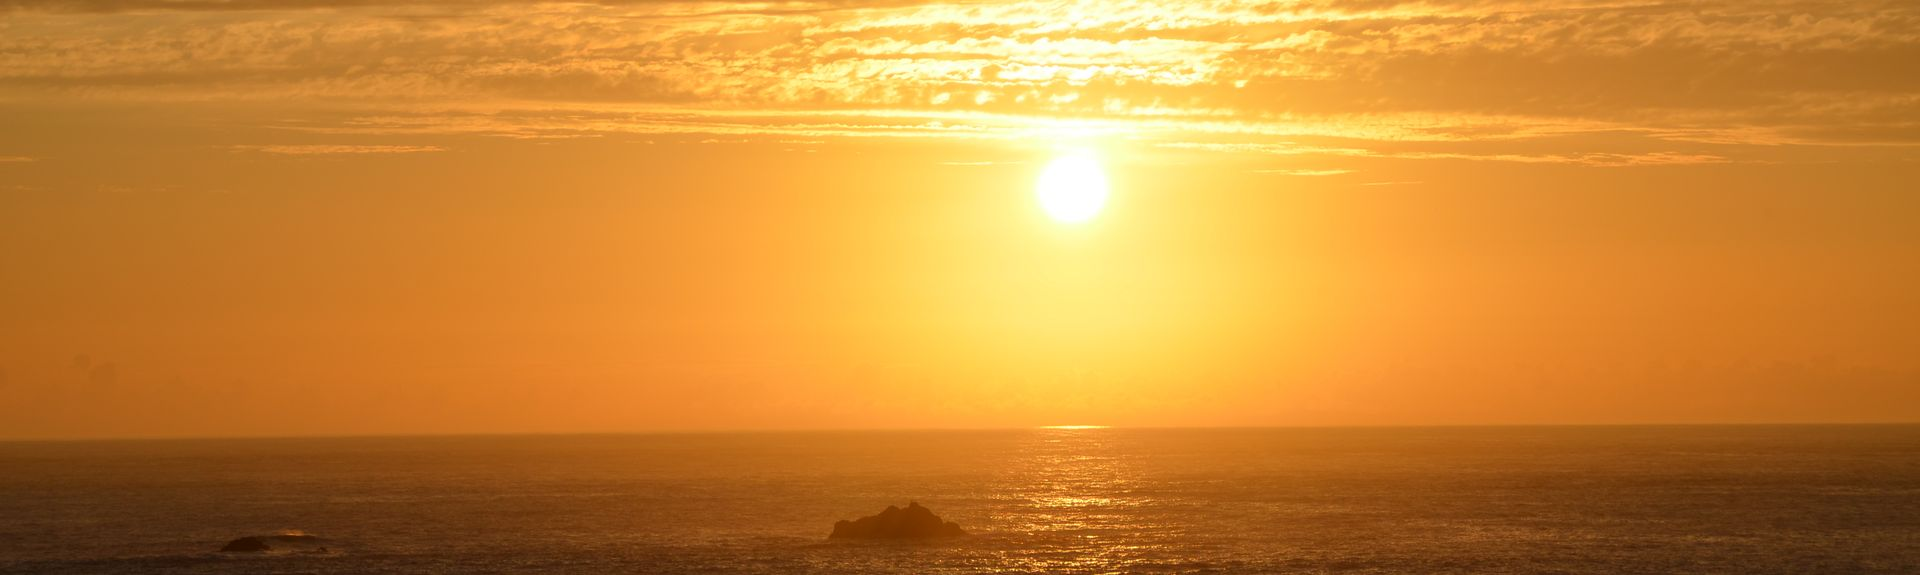 Ouessant, France